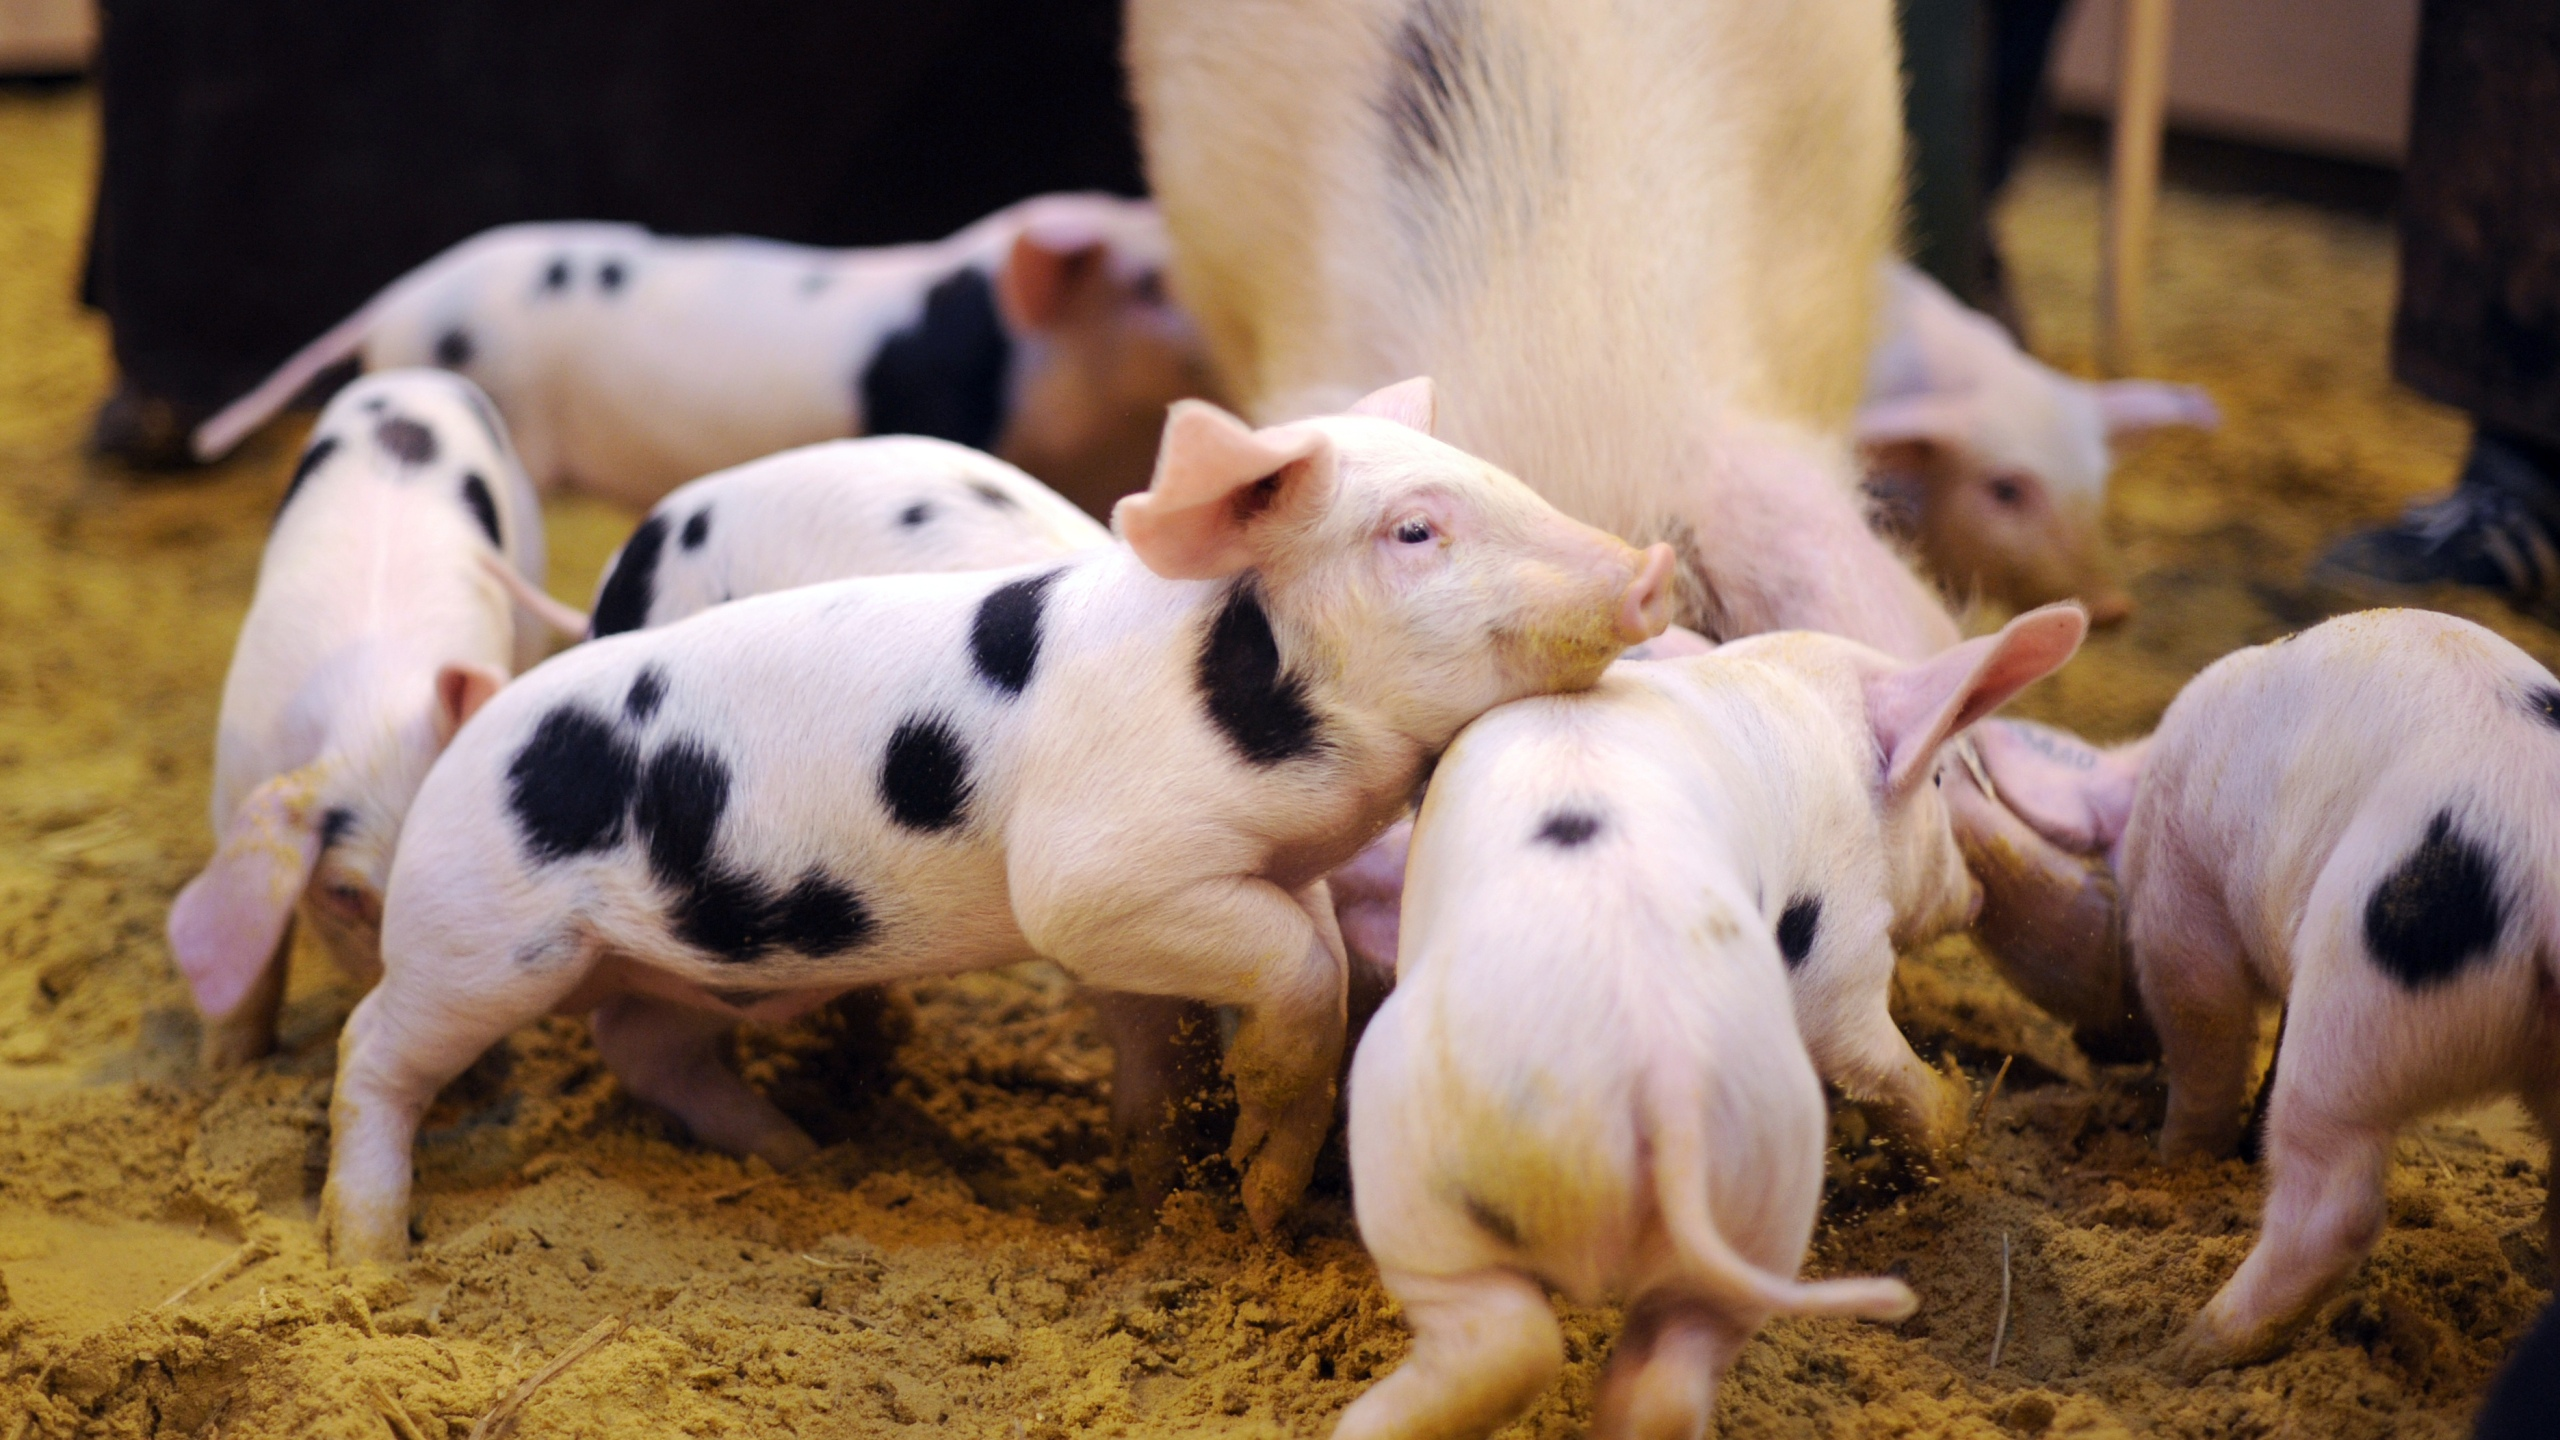 Piglets are see in a file photo. (Credit: LIONEL BONAVENTURE/AFP/Getty Images)